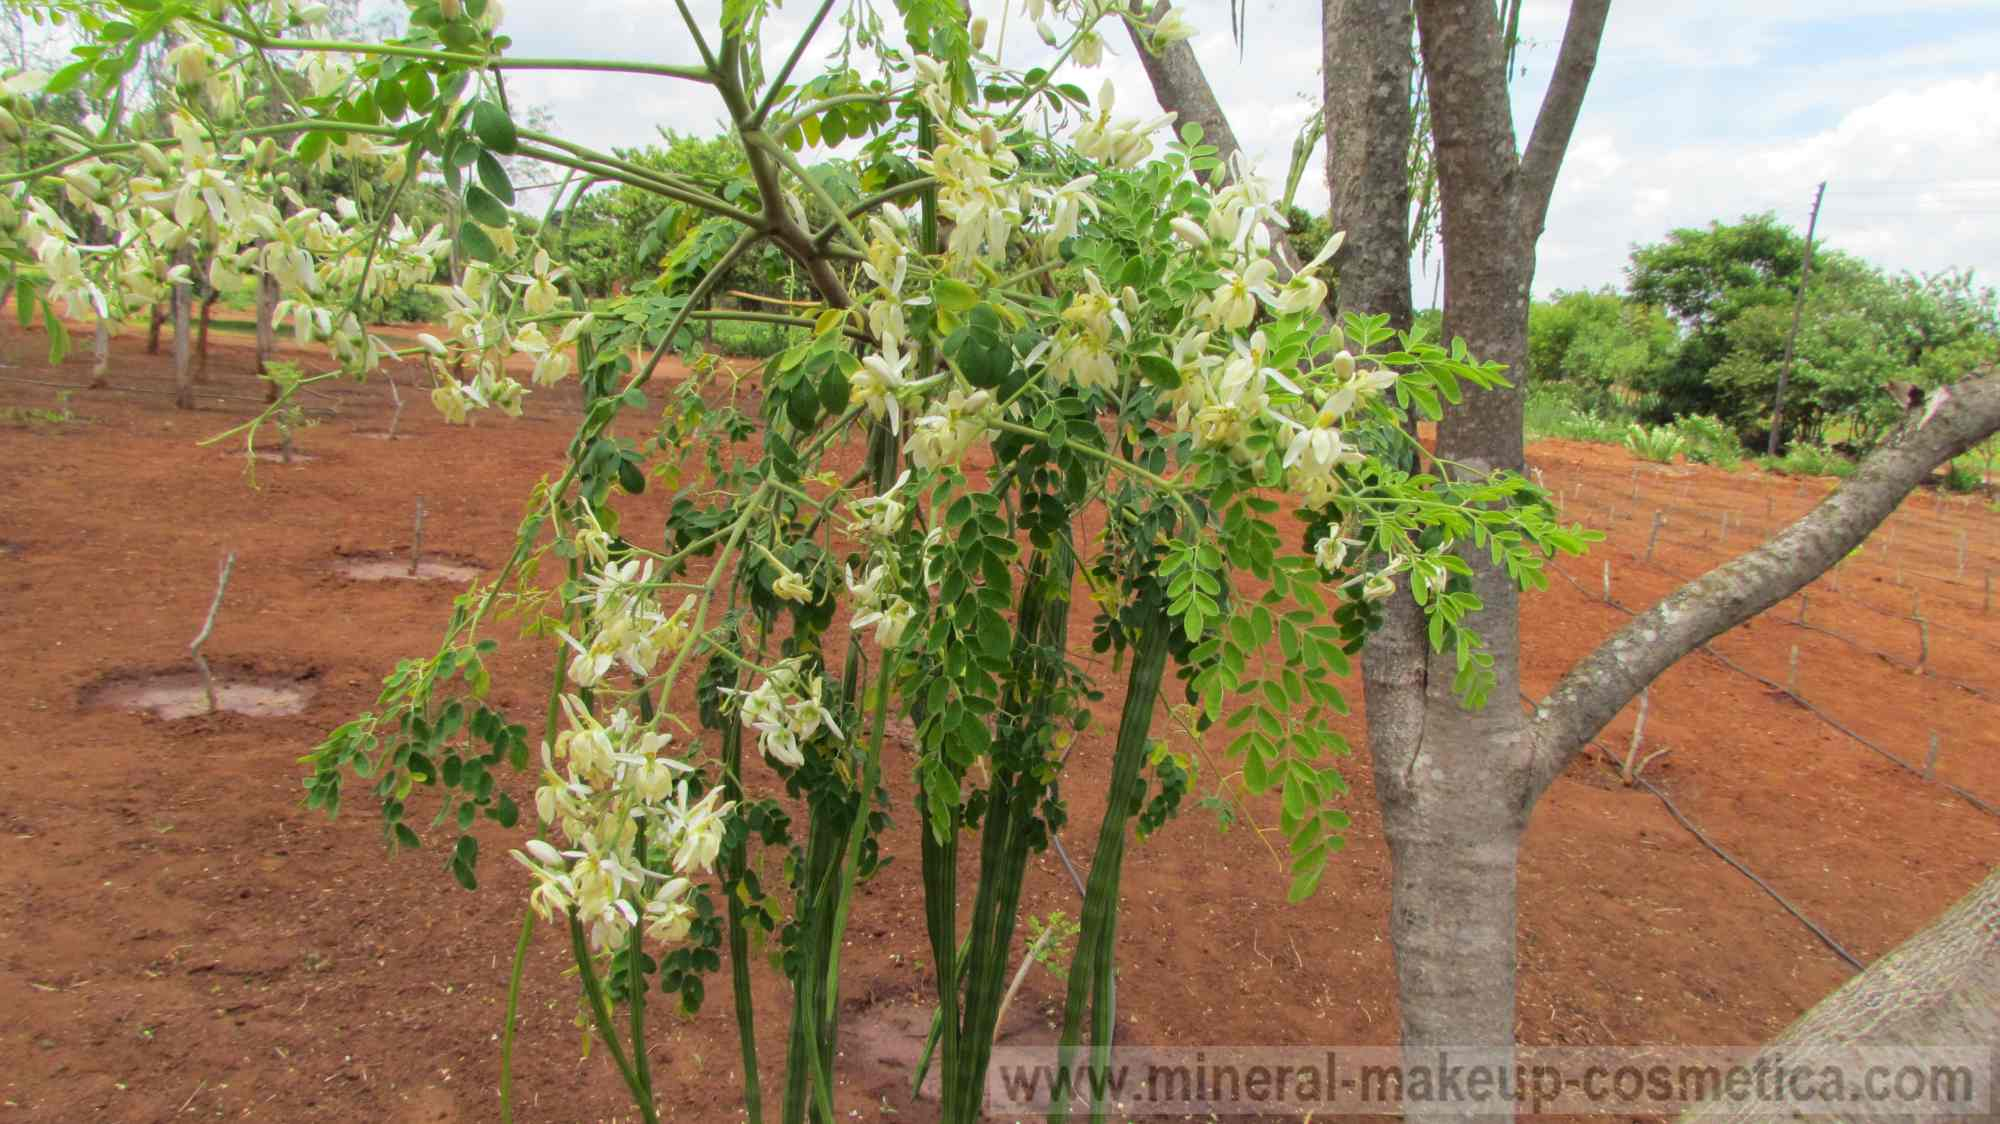 moringa farming We offer organic moringa capsules, moringa powder, moringa tea, moringa oil, moringa body butter, moringa lip balm and other moringa products.